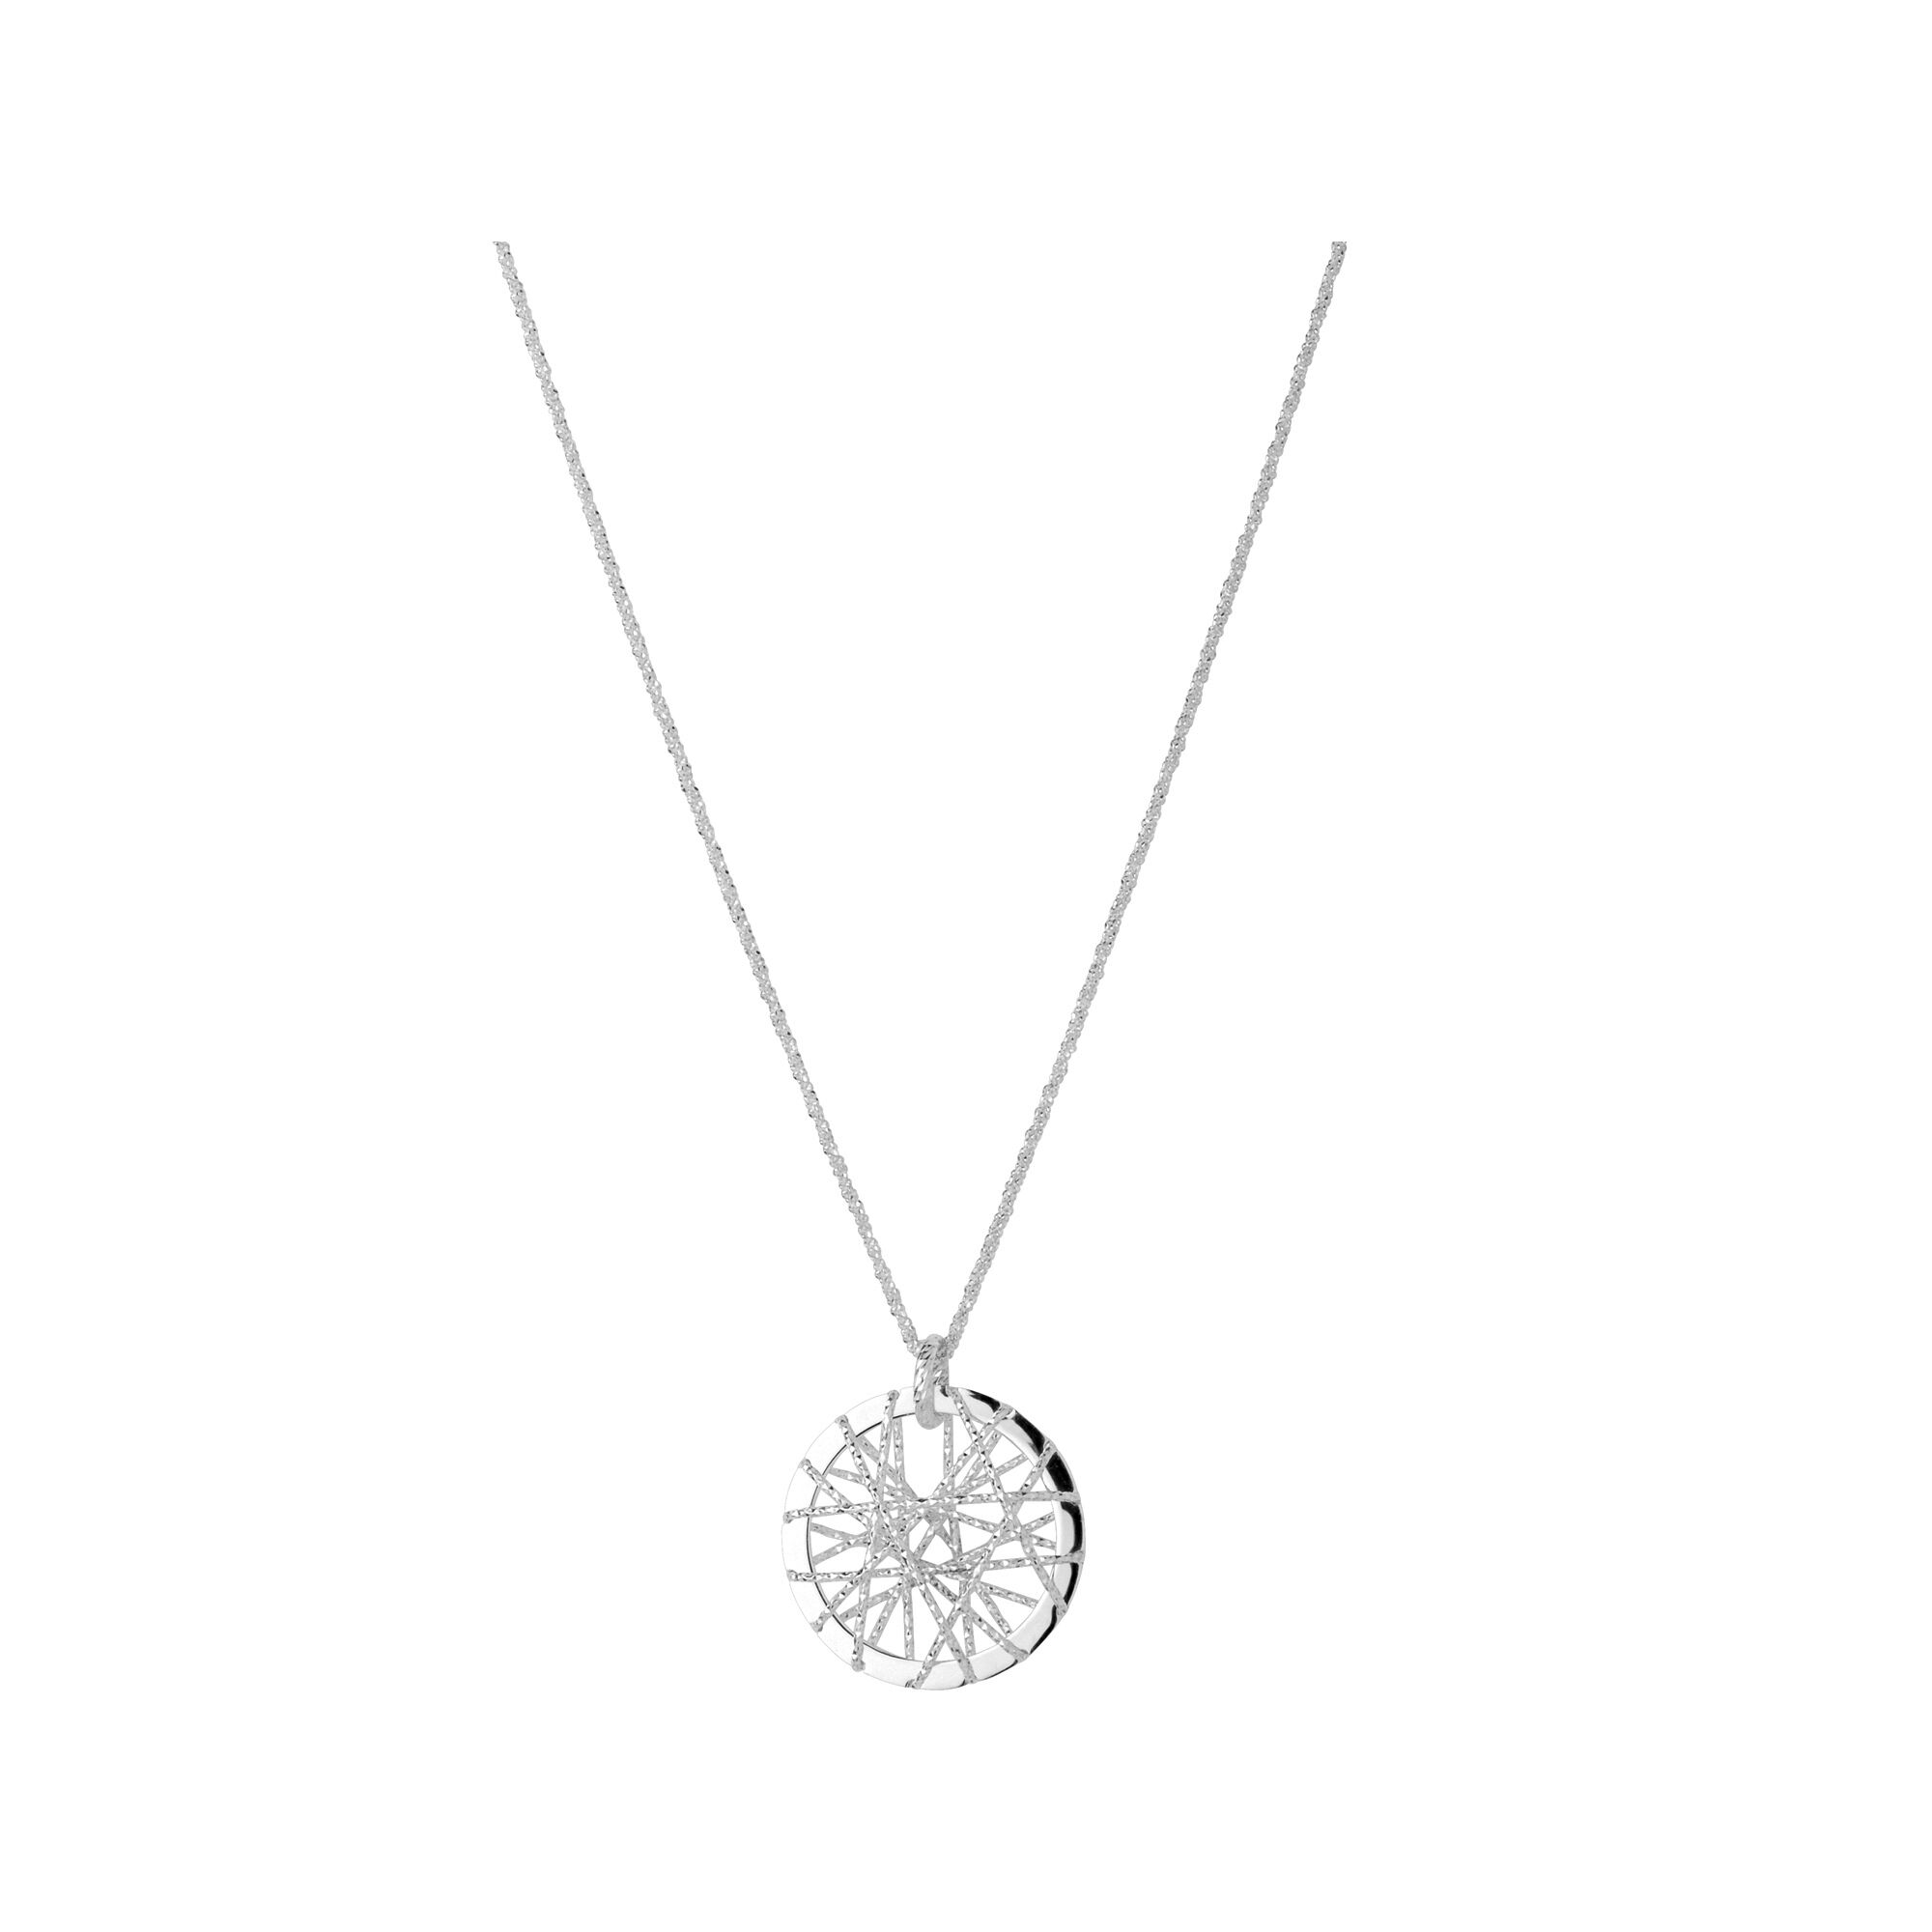 Dream catcher silver necklace dream catcher sterling silver necklace hires mozeypictures Image collections